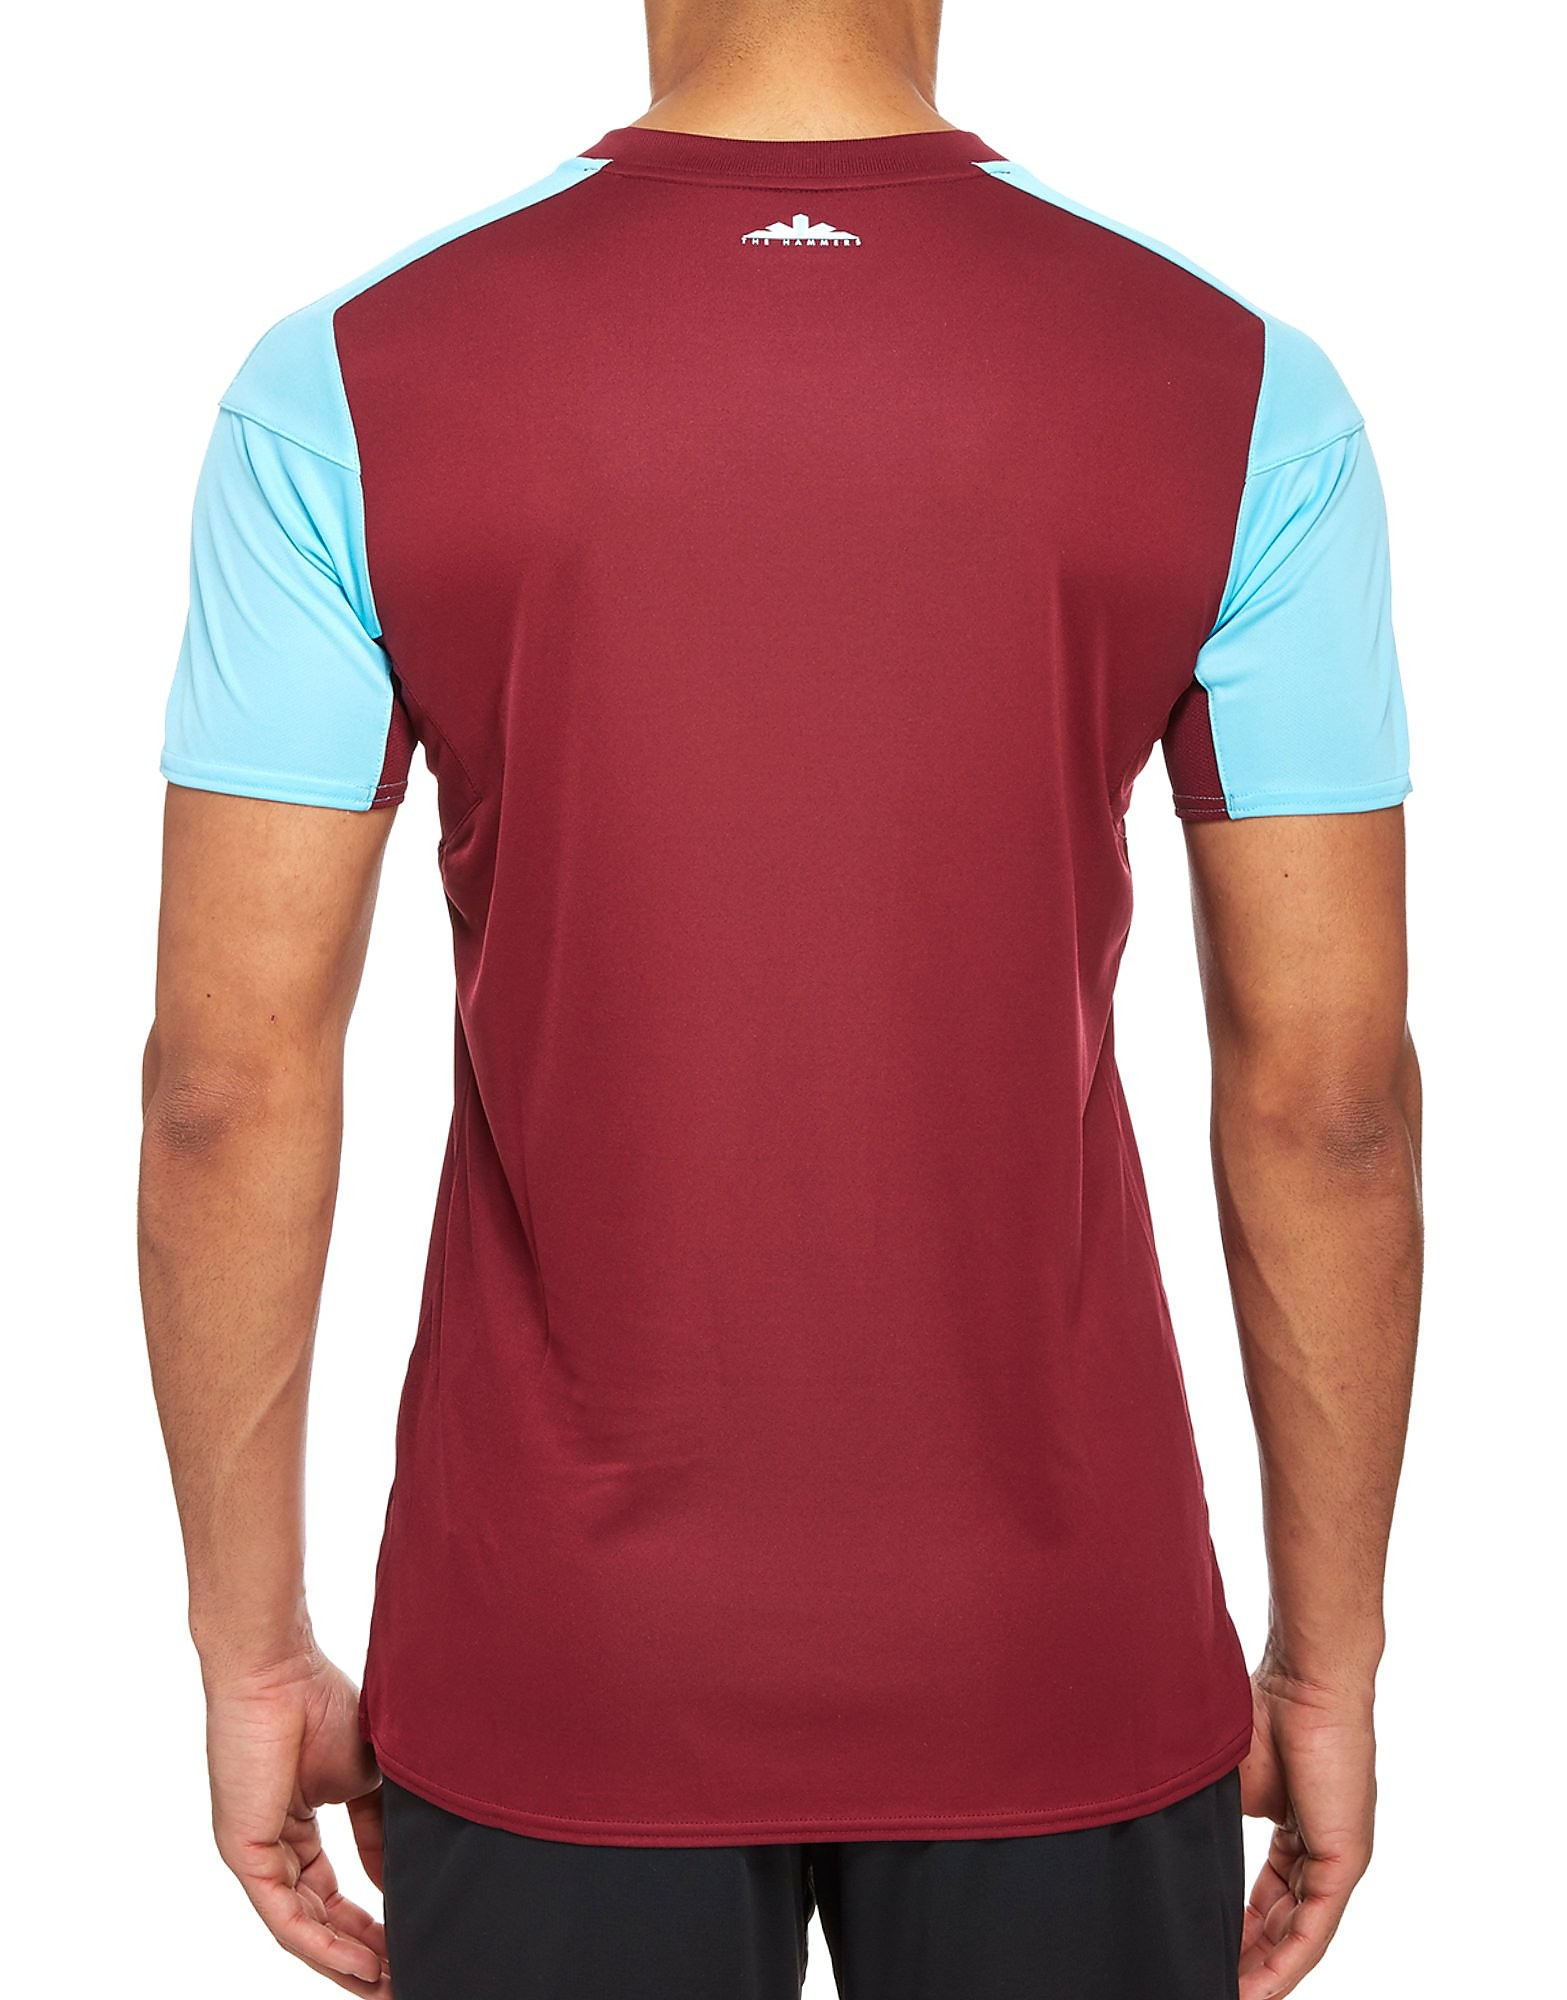 Umbro West Ham United 2017/18 Home Shirt PRE ORDER